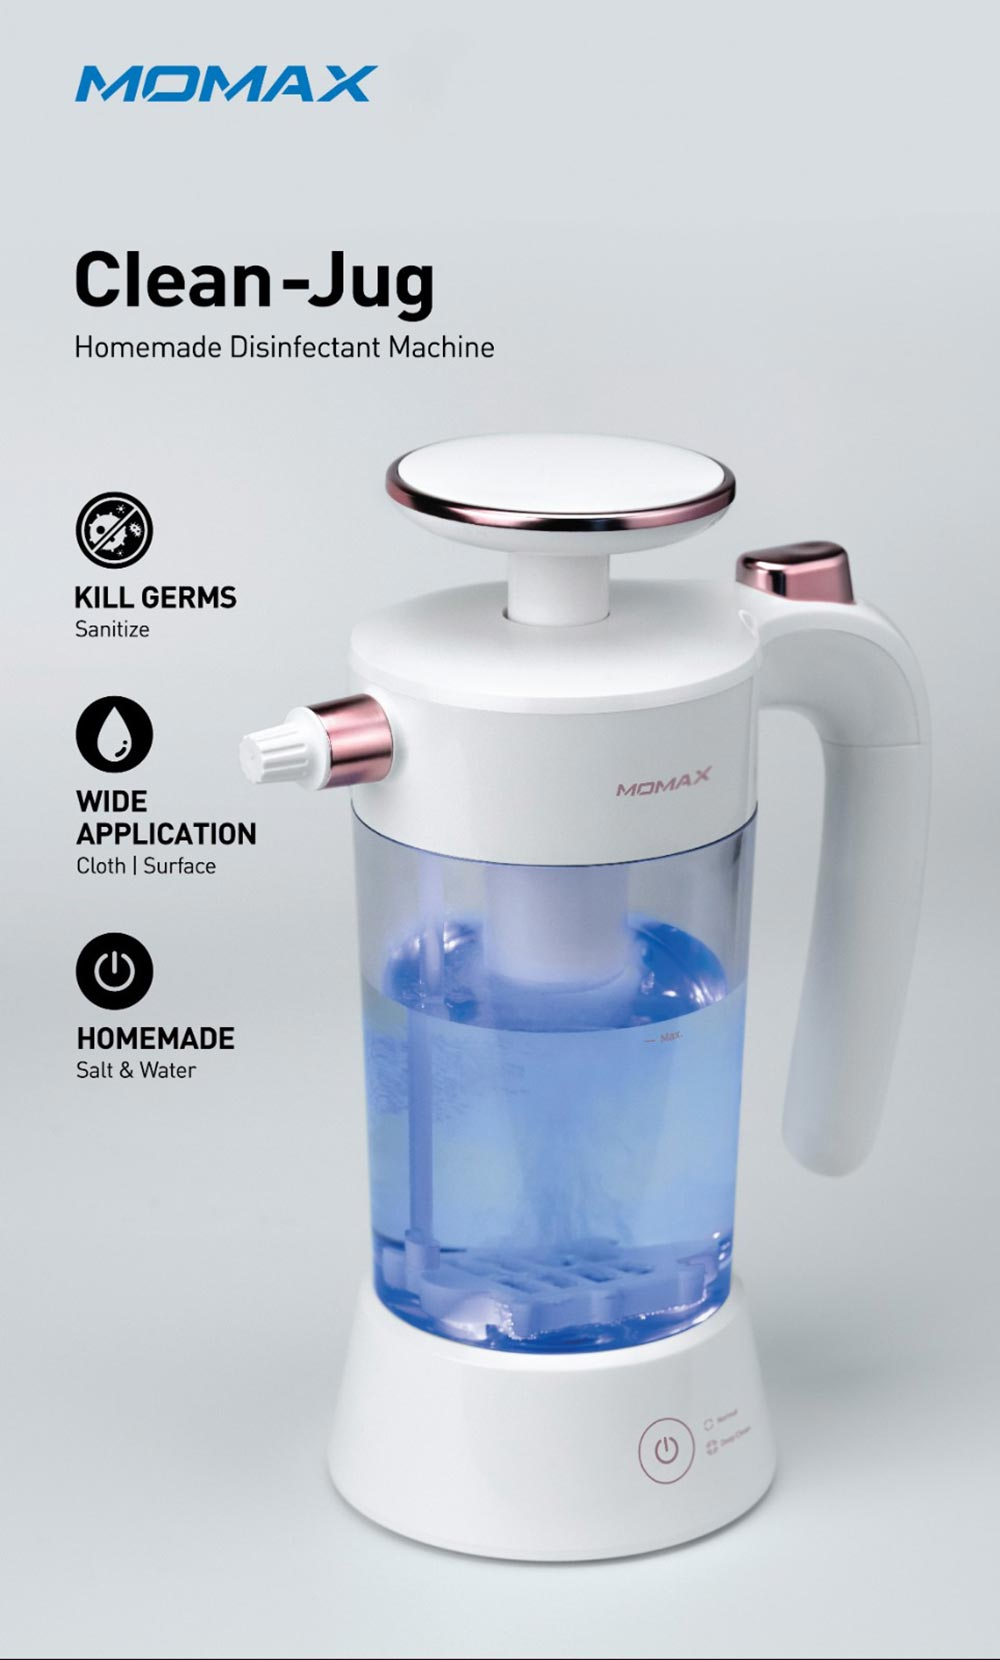 momax clean jug homemade disinfectant machine